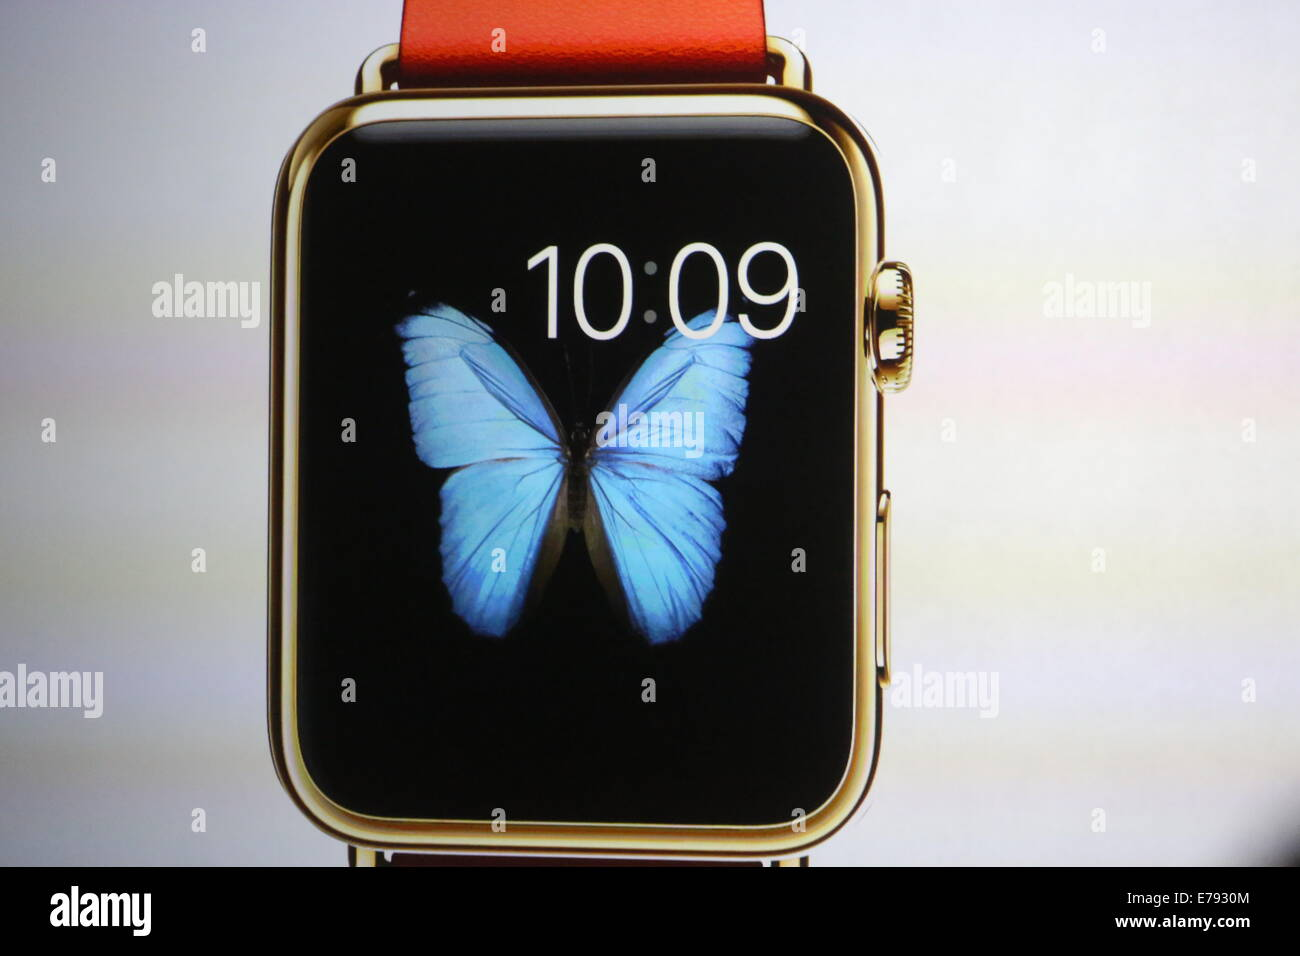 Cupertino, California, USA. 9th September, 2014. Apple's computer watch with a square-shaped display and rounded Stock Photo